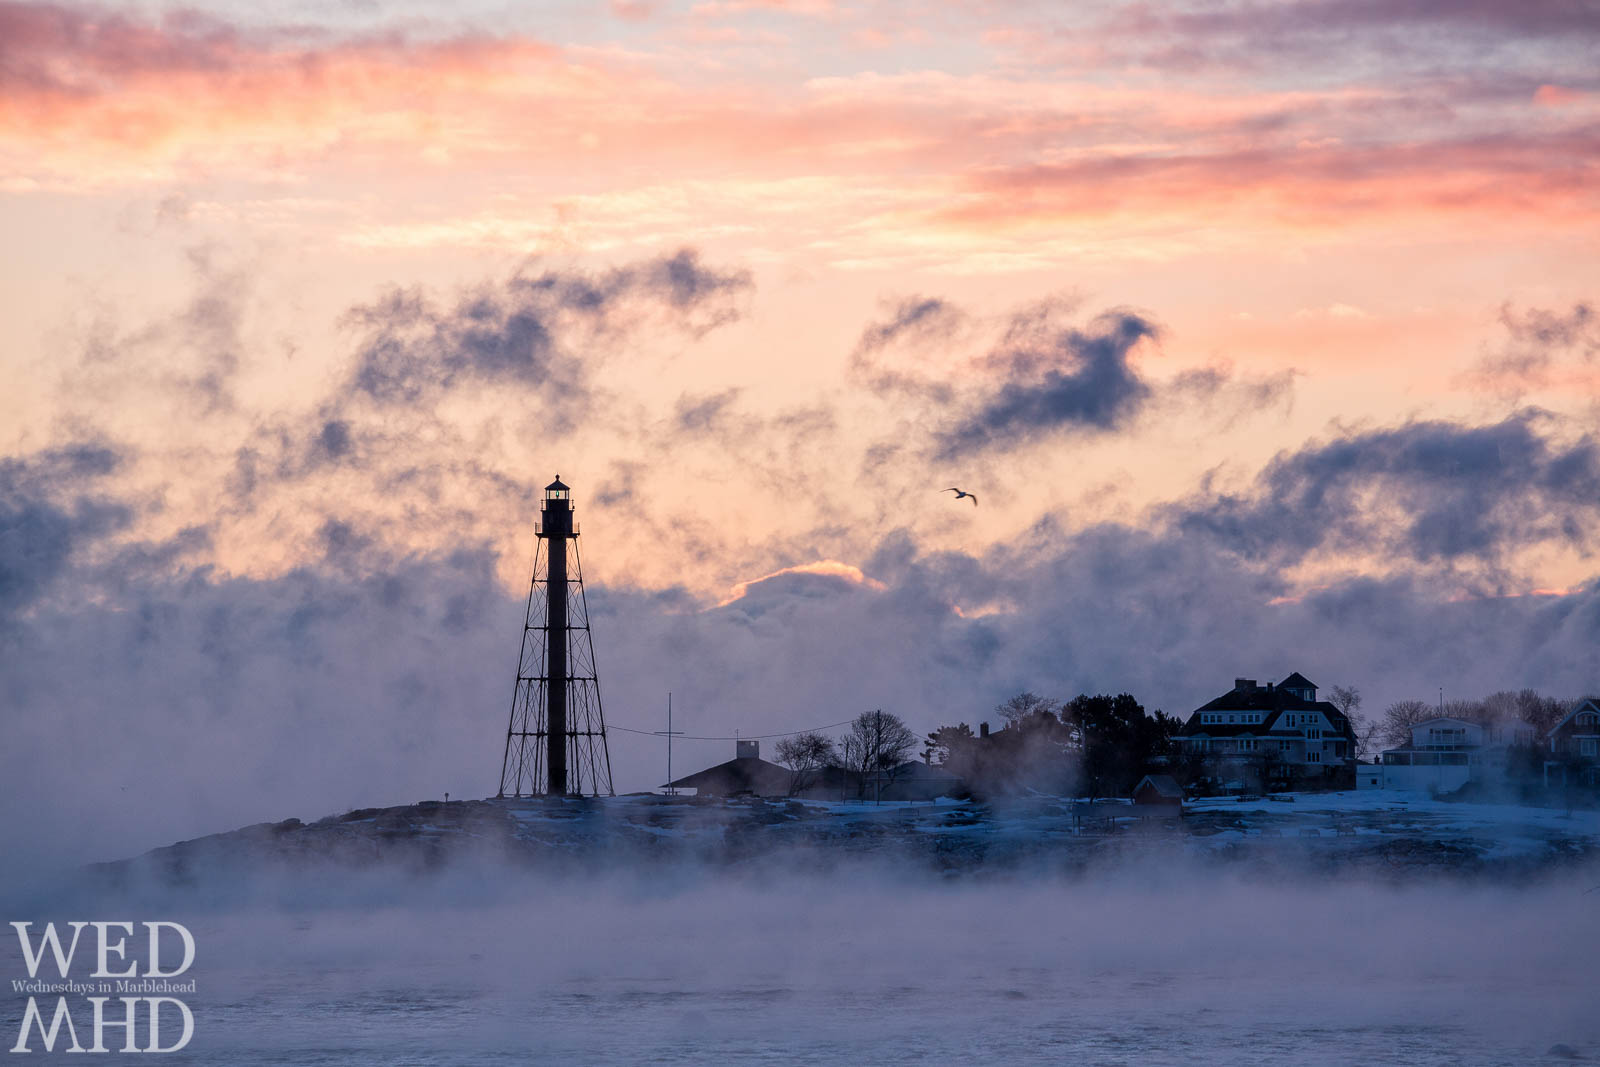 A pink sky colors an arctic morning in Marblehead with a seagull flying over the sea smoke sunrise